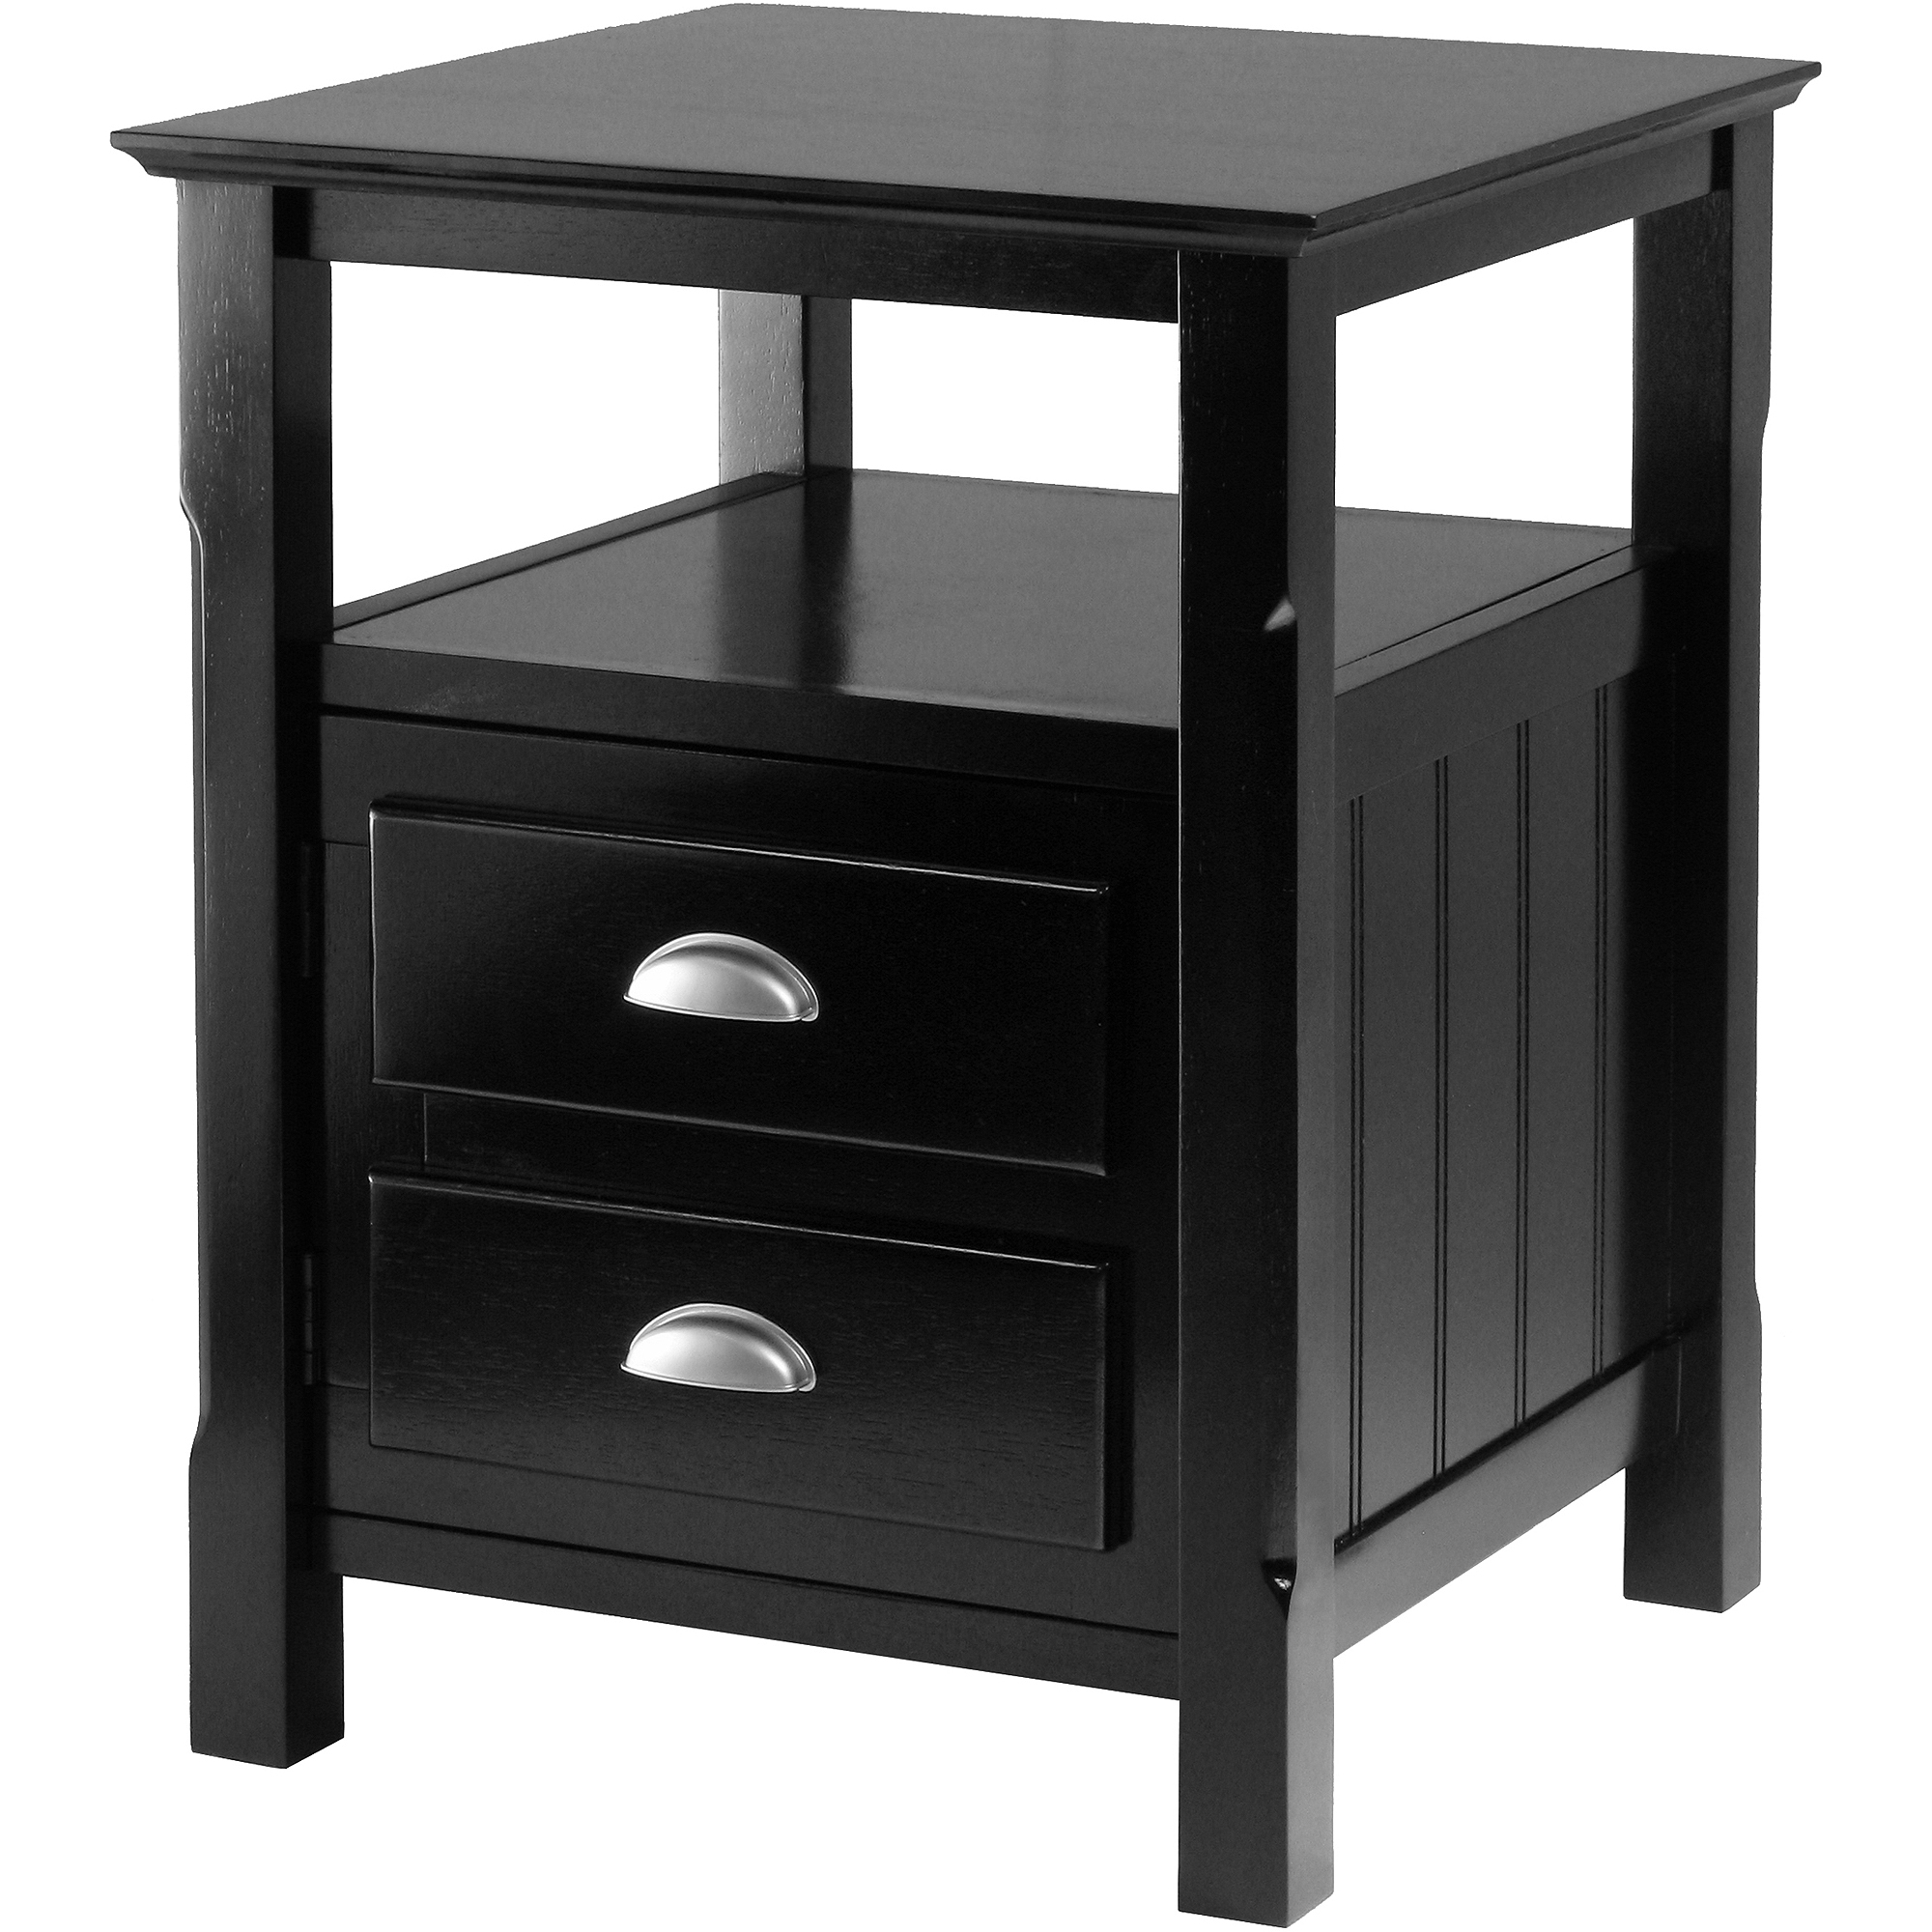 winsome timmy nightstand accent table black night bdi furniture pier one art outdoor rectangular side lucite nesting tables target replica chairs luxury linens white farmhouse and